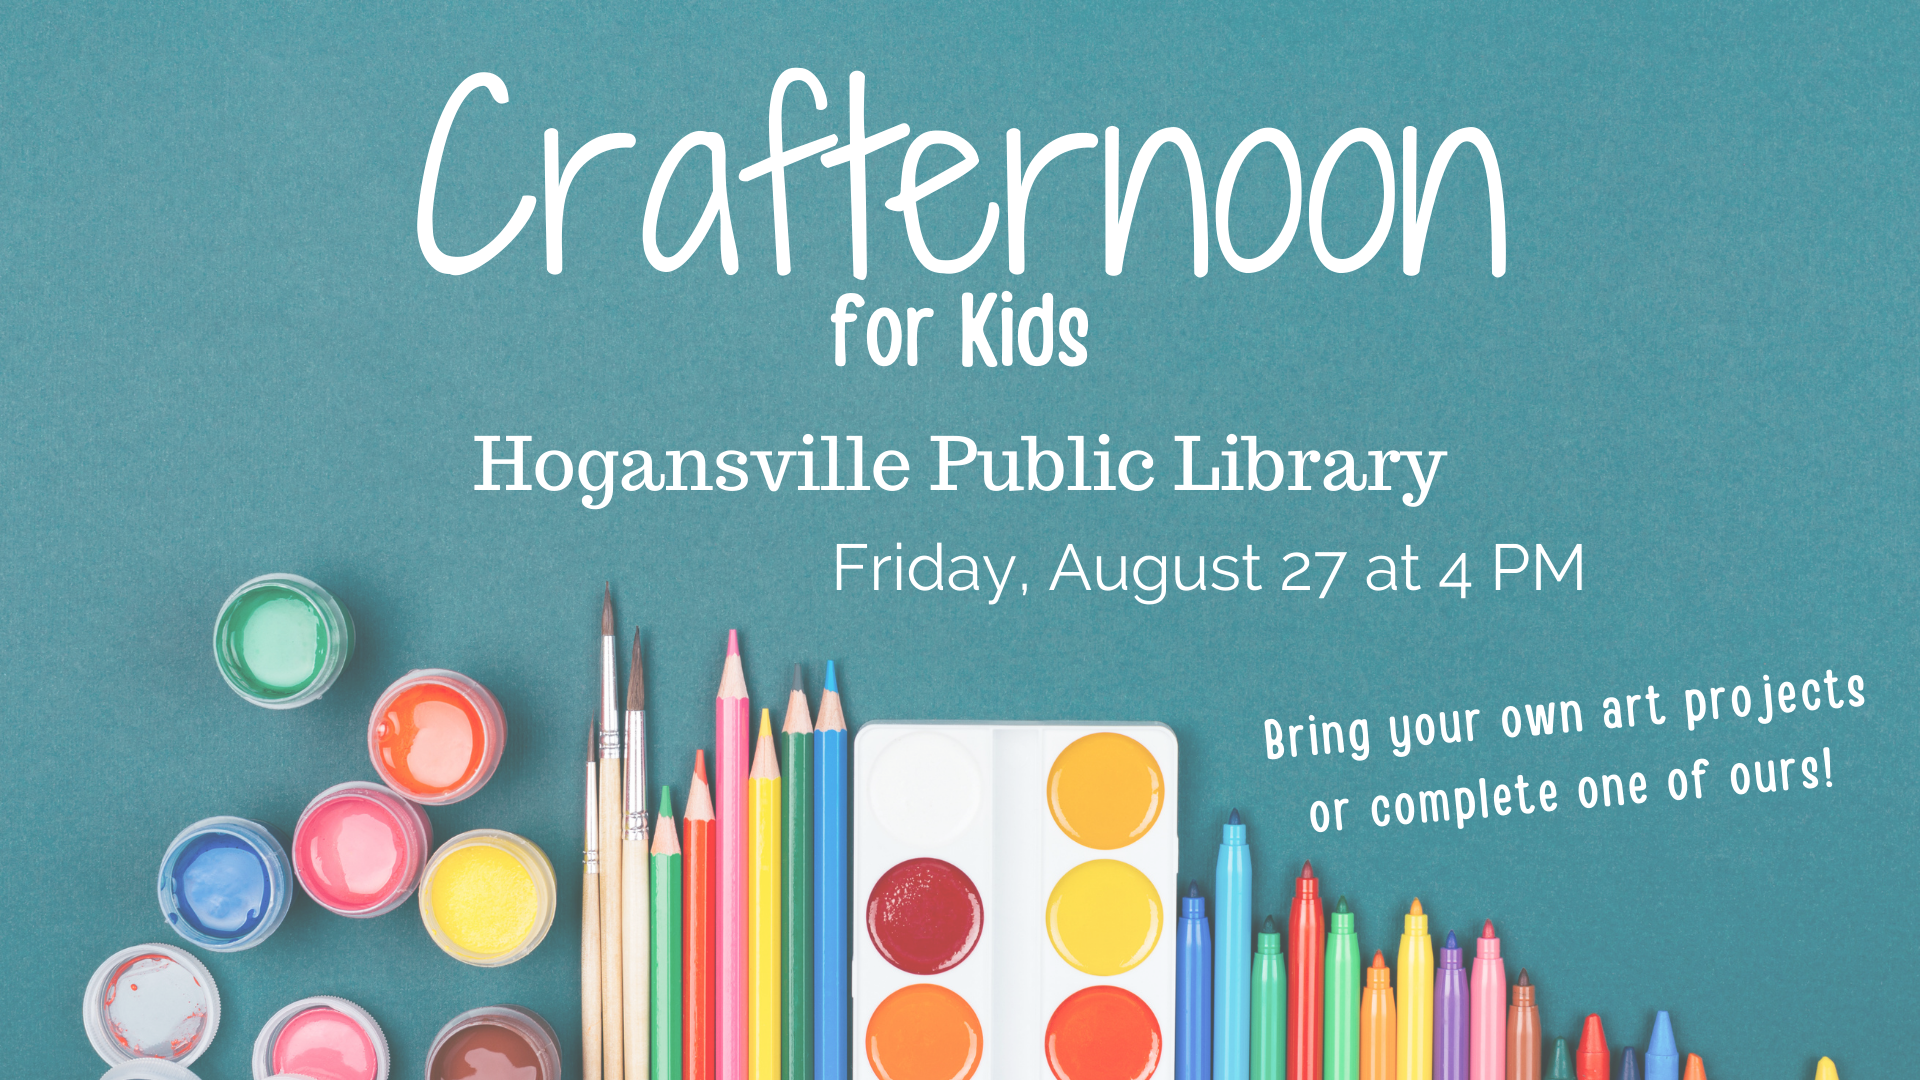 Crafternoon for Kids at the Hogansville Public Library on Friday, August 27 from 4 to 5 PM